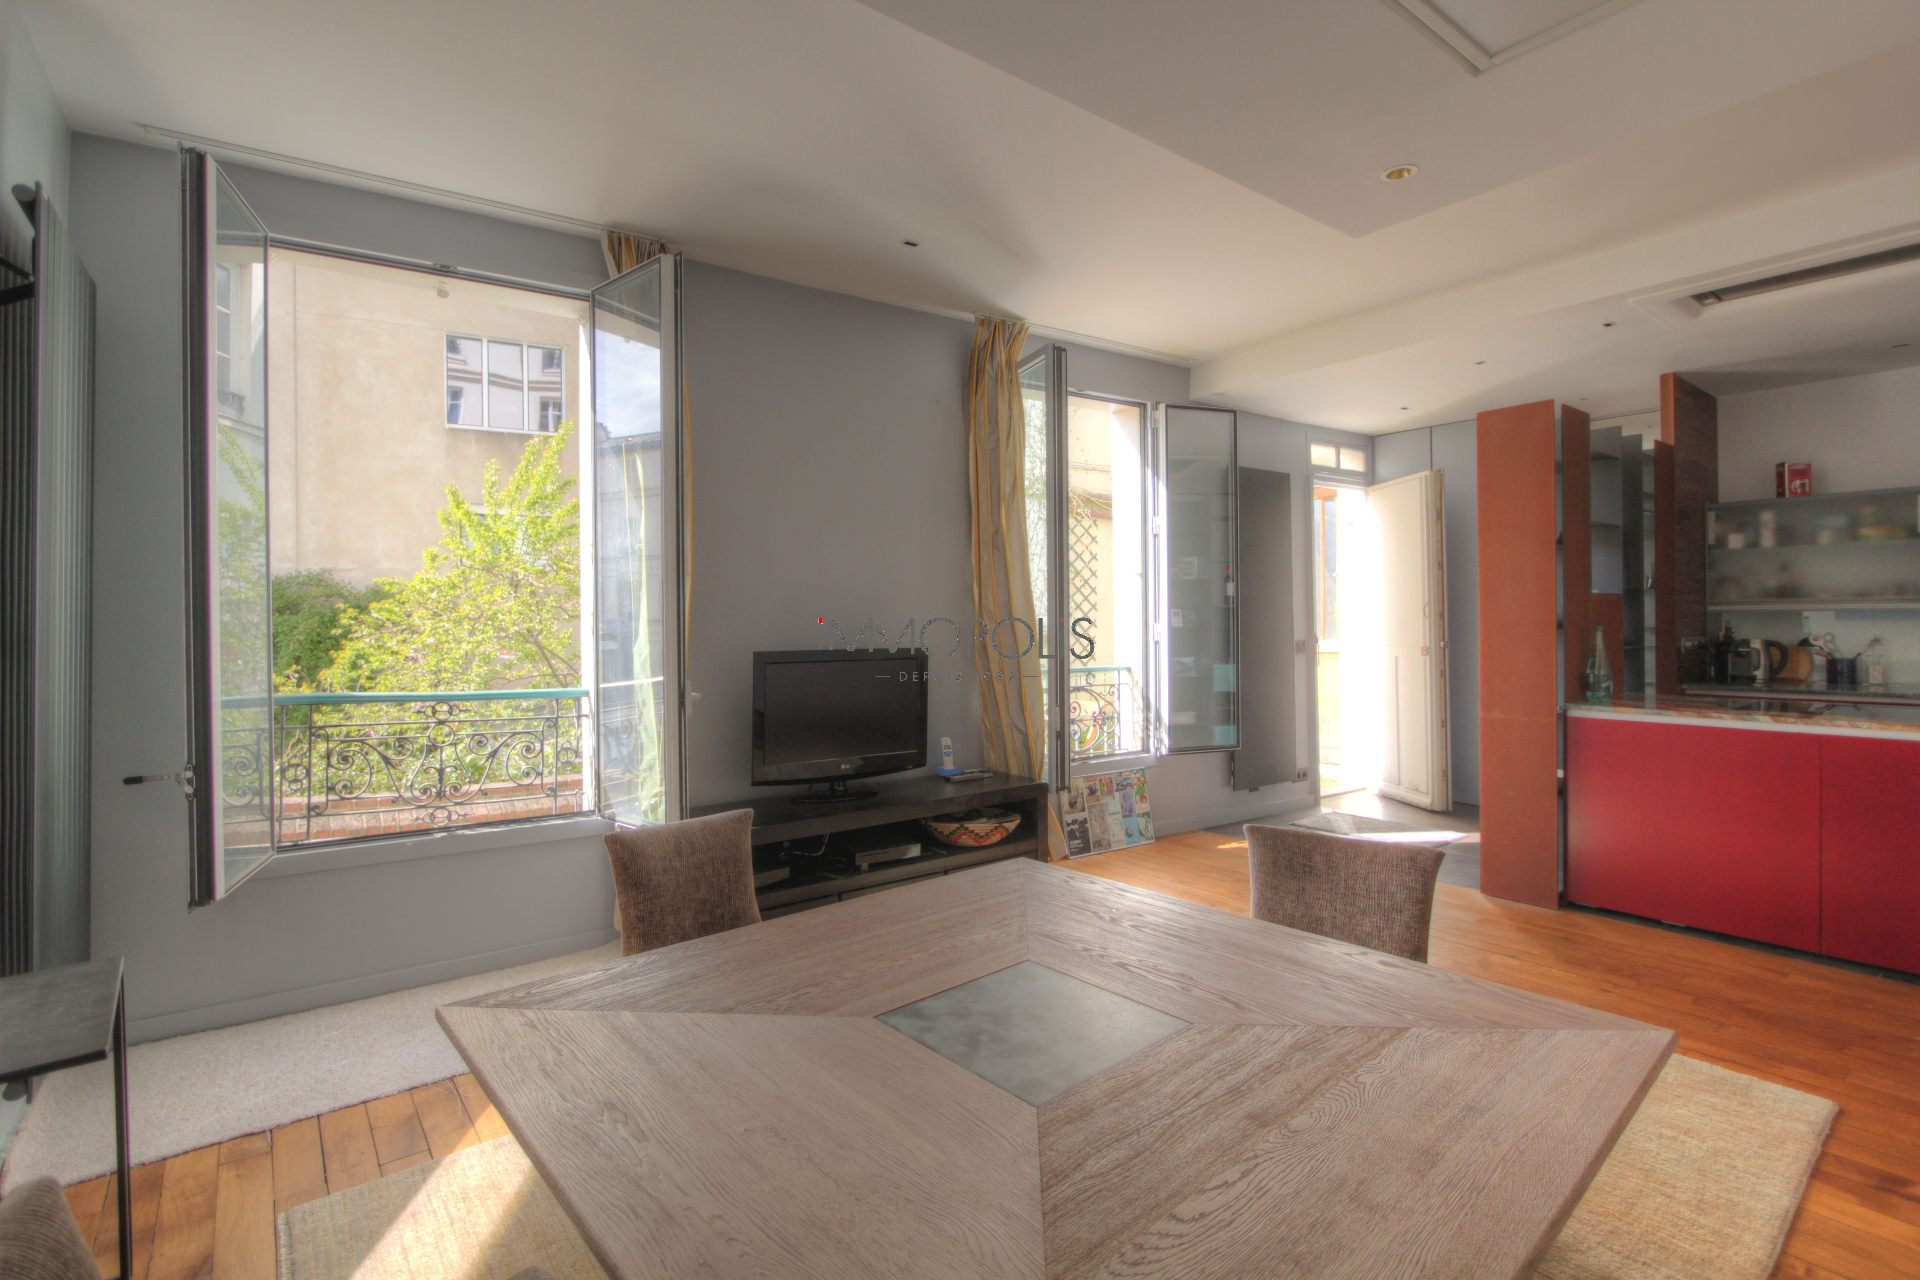 Exceptional in Montmartre (rue Gabrielle): refurbished open space, sumptuous appointments, with balcony and open view! 4